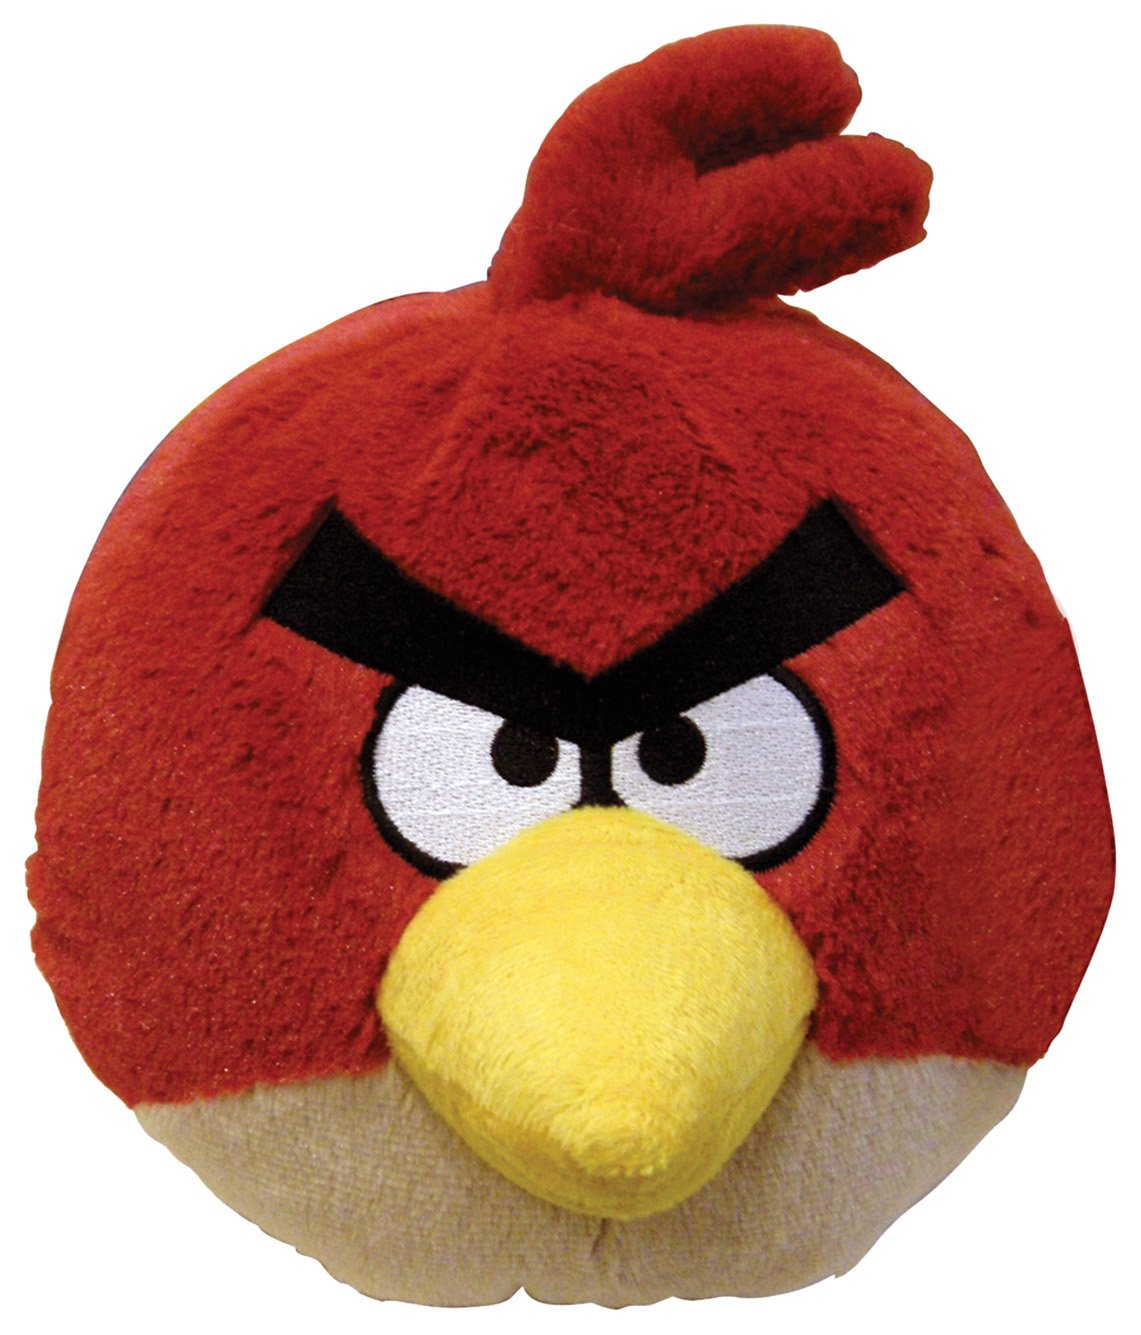 Commonwealth Toy Angry Birds 16'' Plush Red Bird With Sound